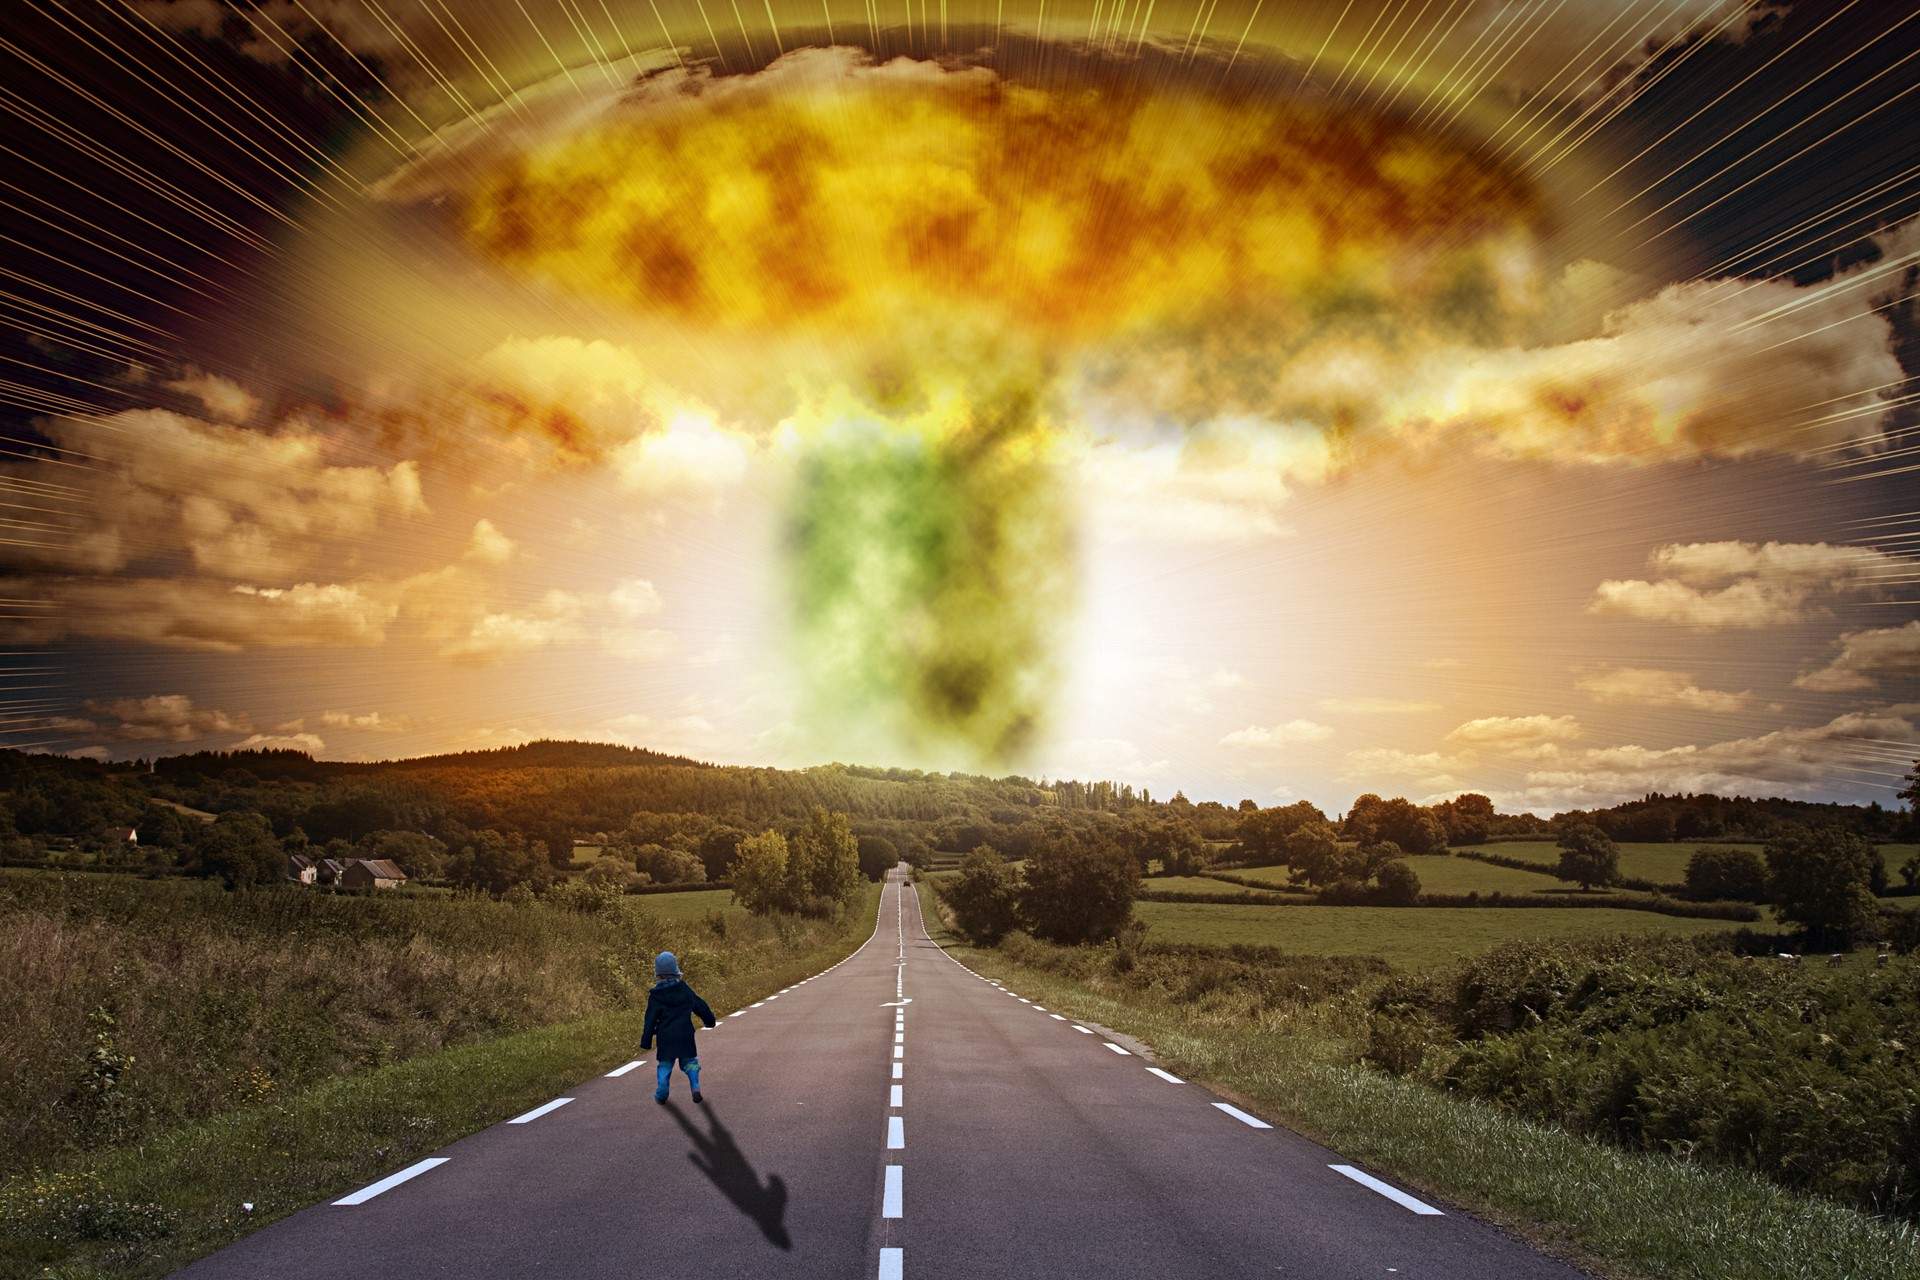 Apocalypse child watching from road HD wallpaper for Desktop